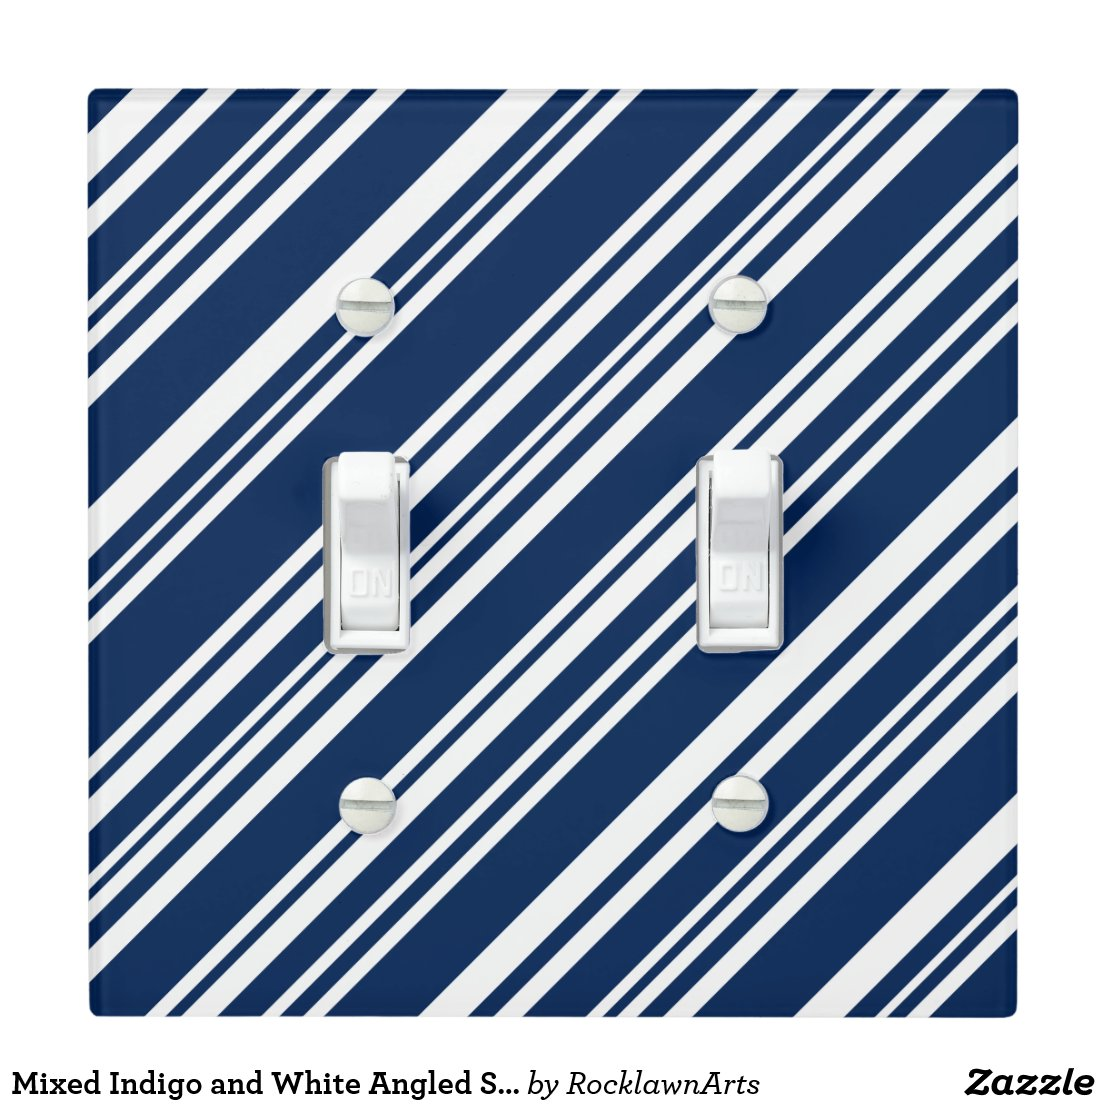 Mixed Indigo and White Angled Stripes Light Switch Cover